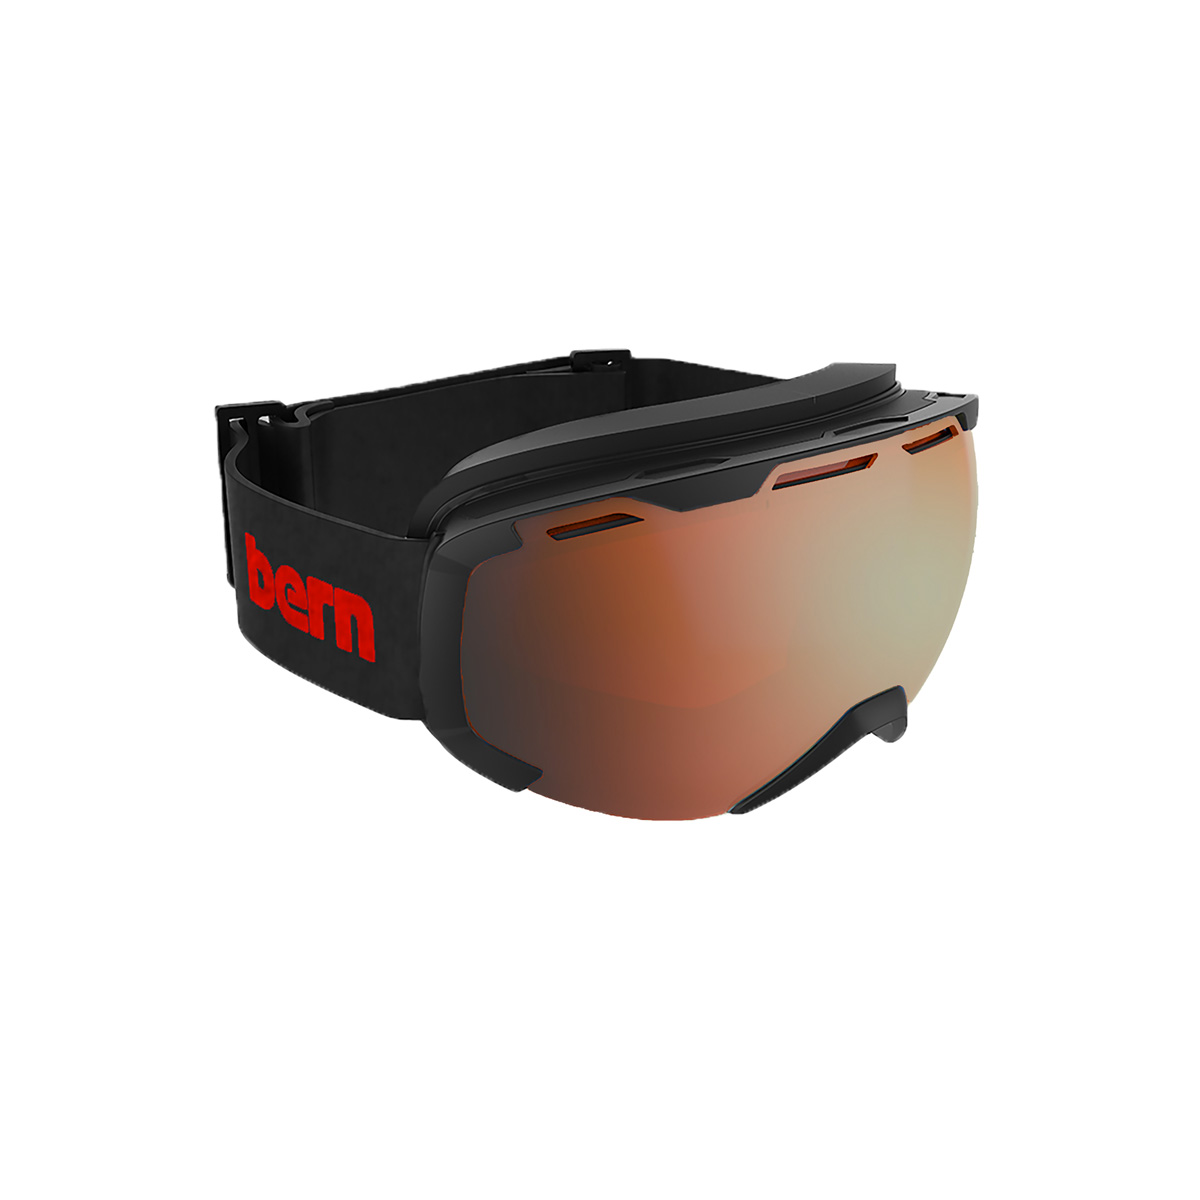 Bern 2017/18 Sawyer Junior Boys Small Frame Winter Snow Goggles | eBay